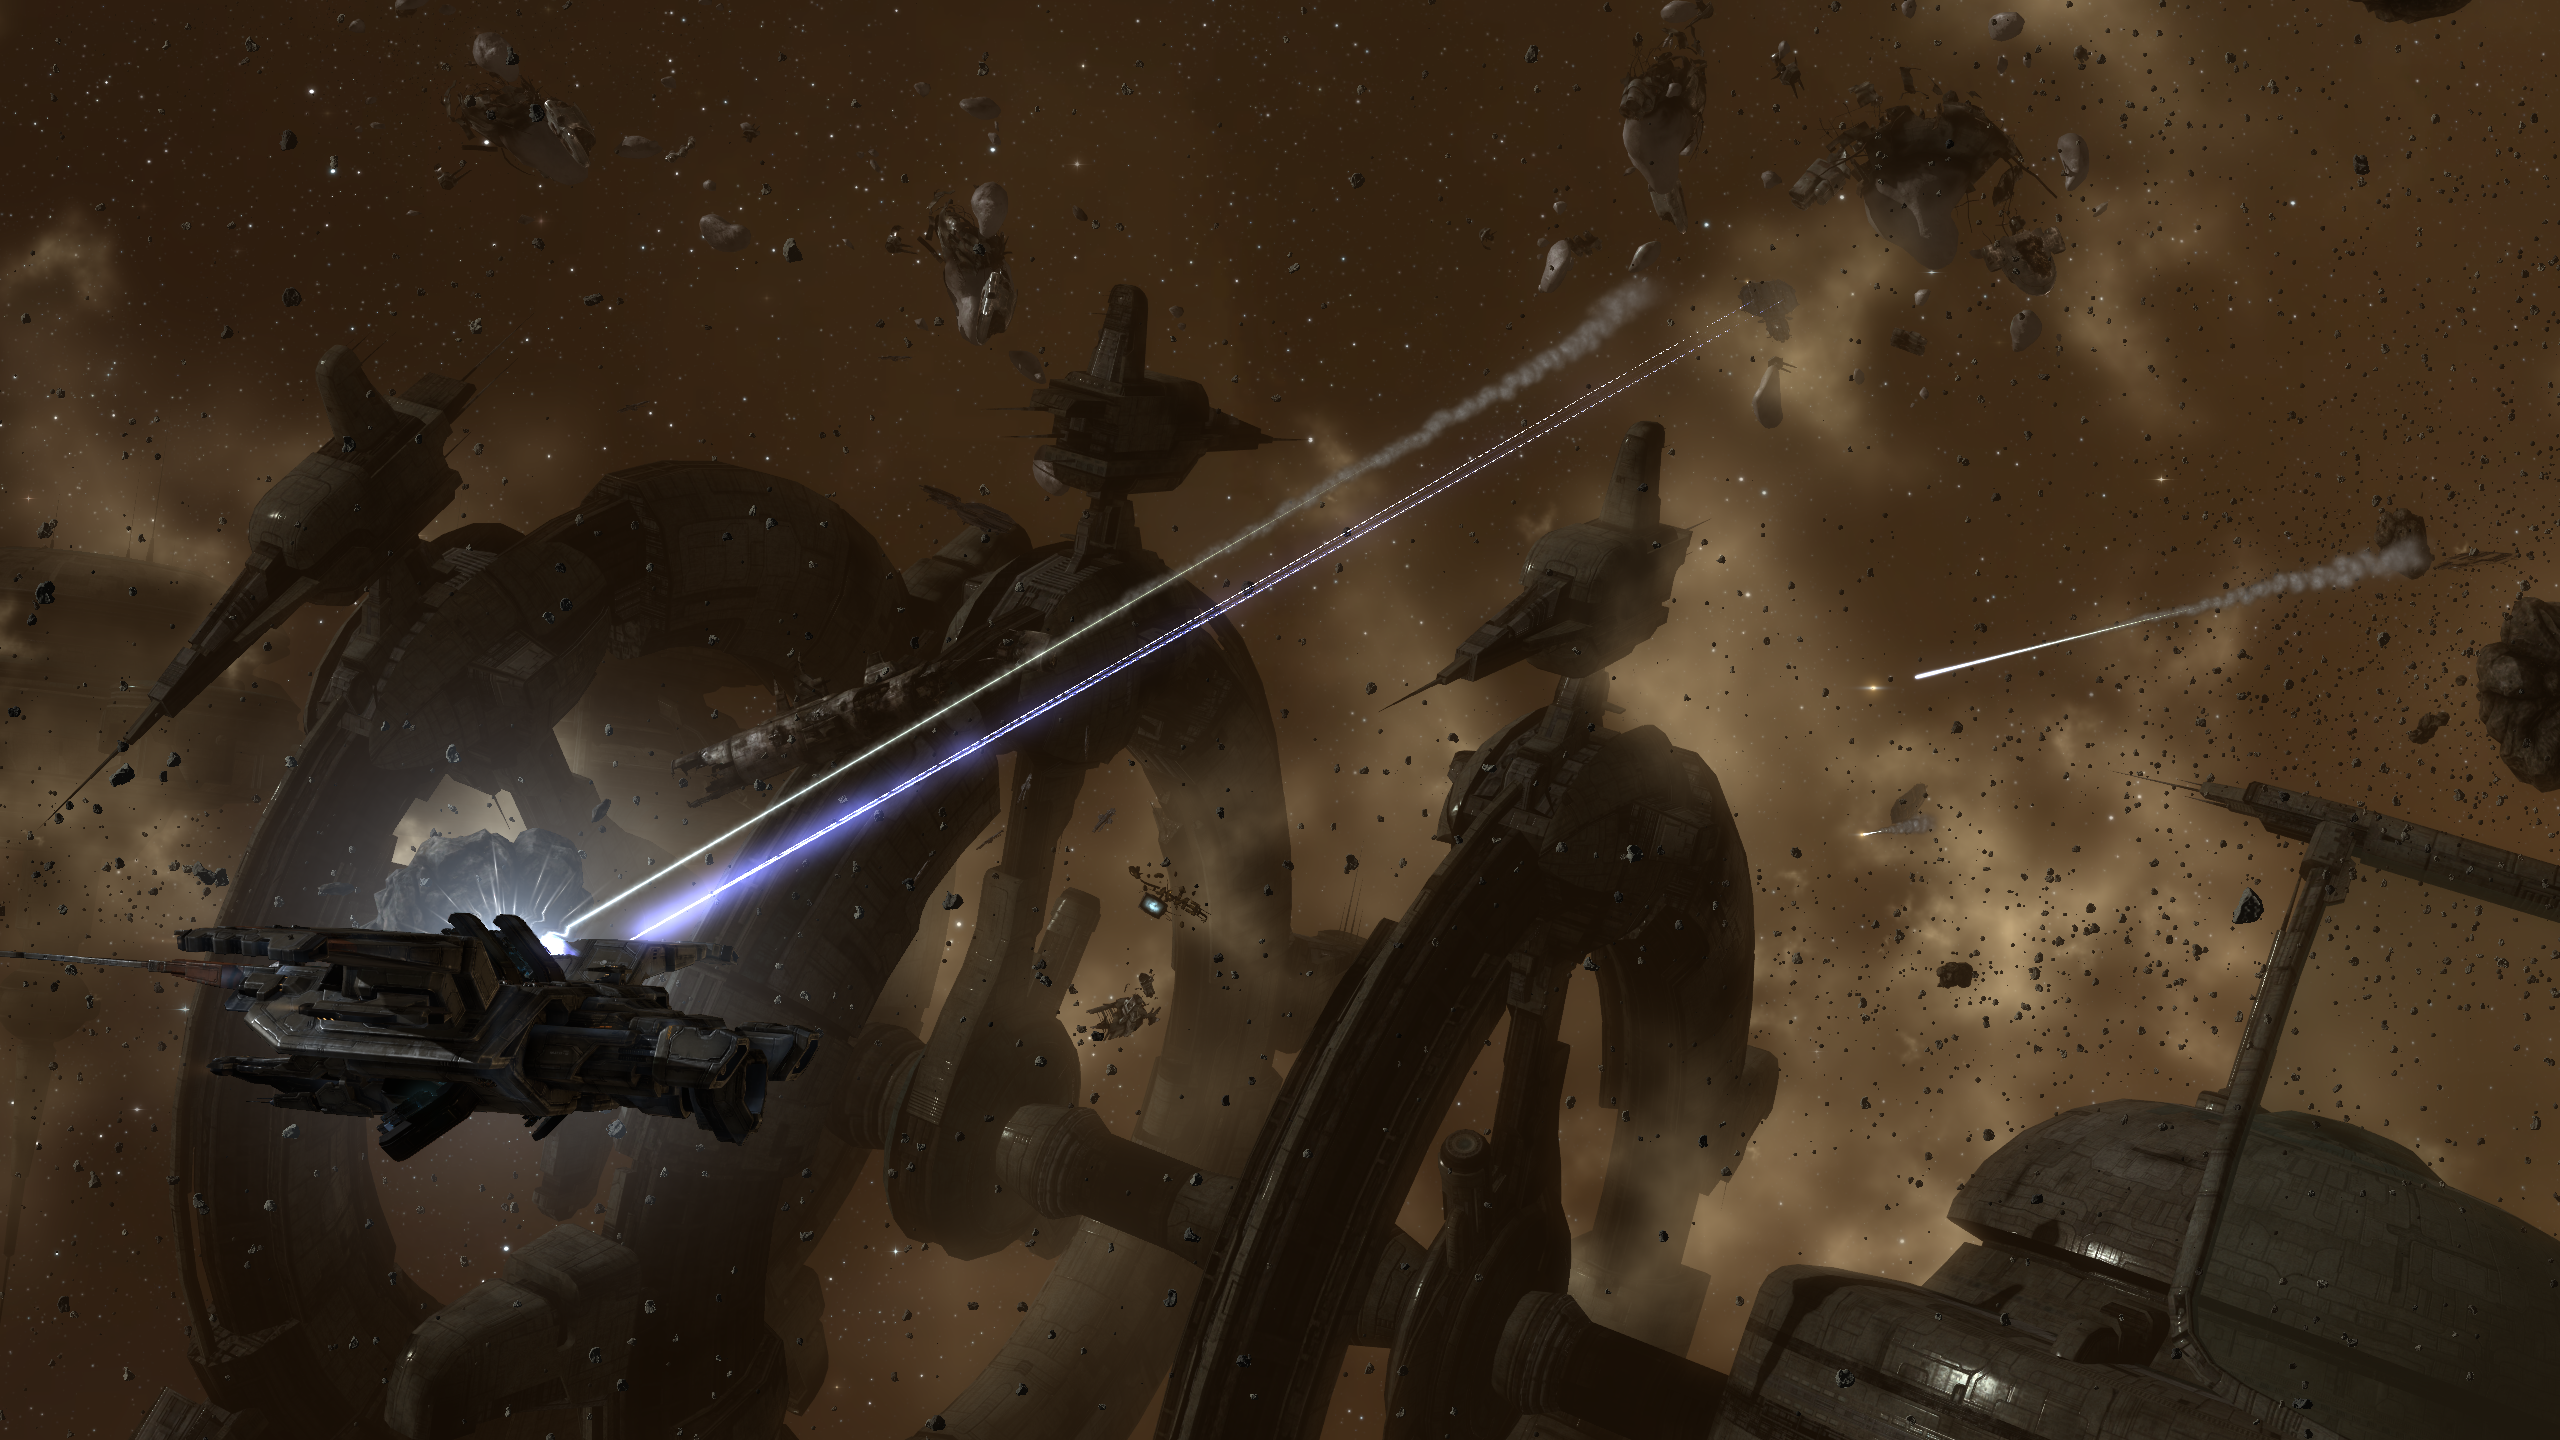 EVE Online, Space, Science Fiction, Spaceship, War, Video ...